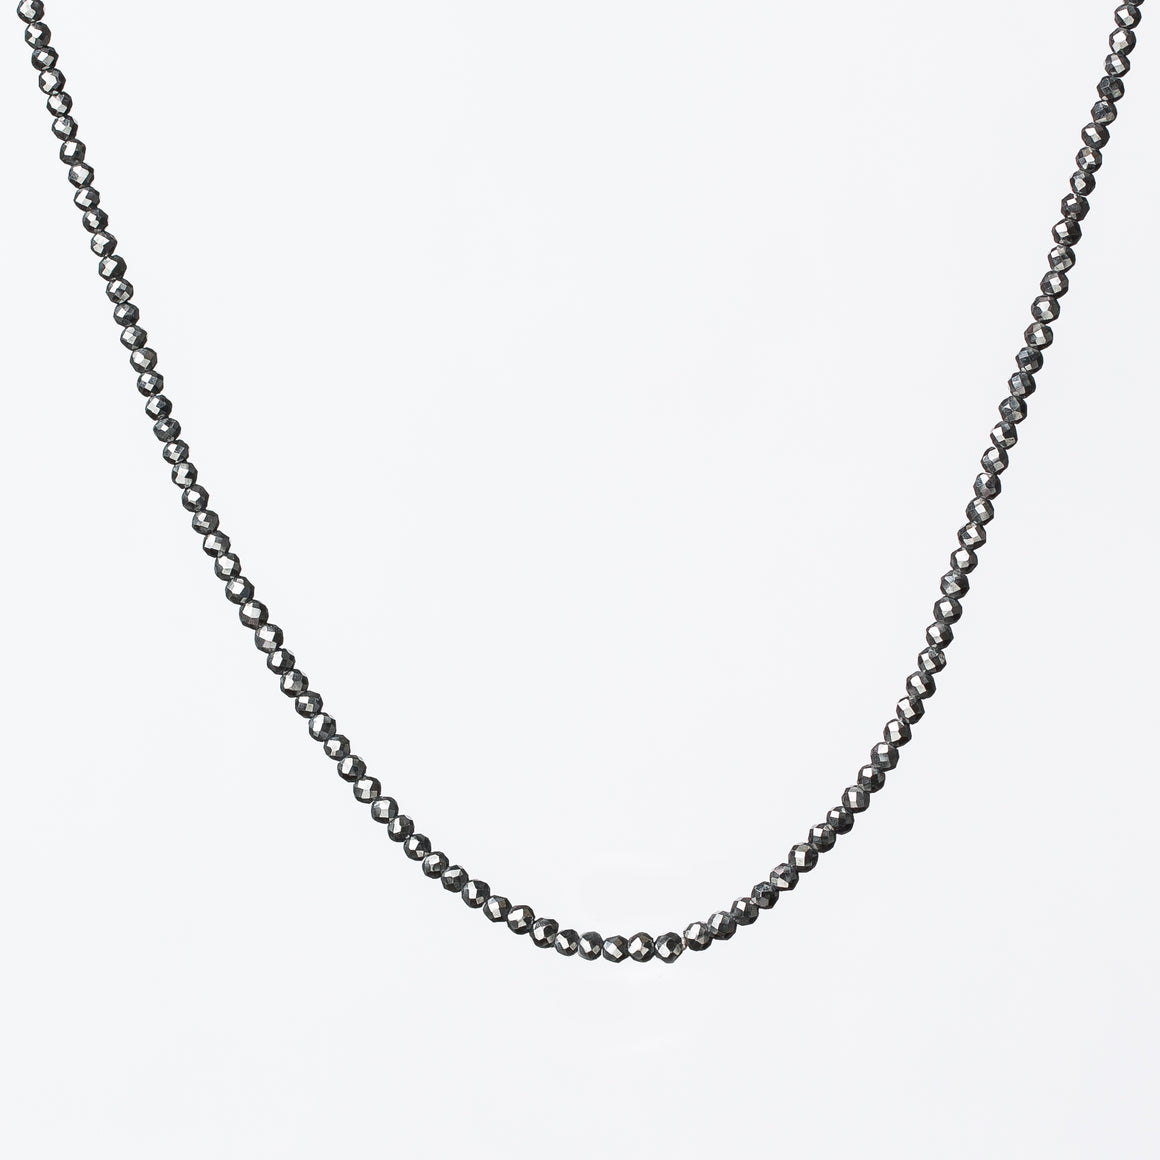 Black Diamond Faceted Necklace